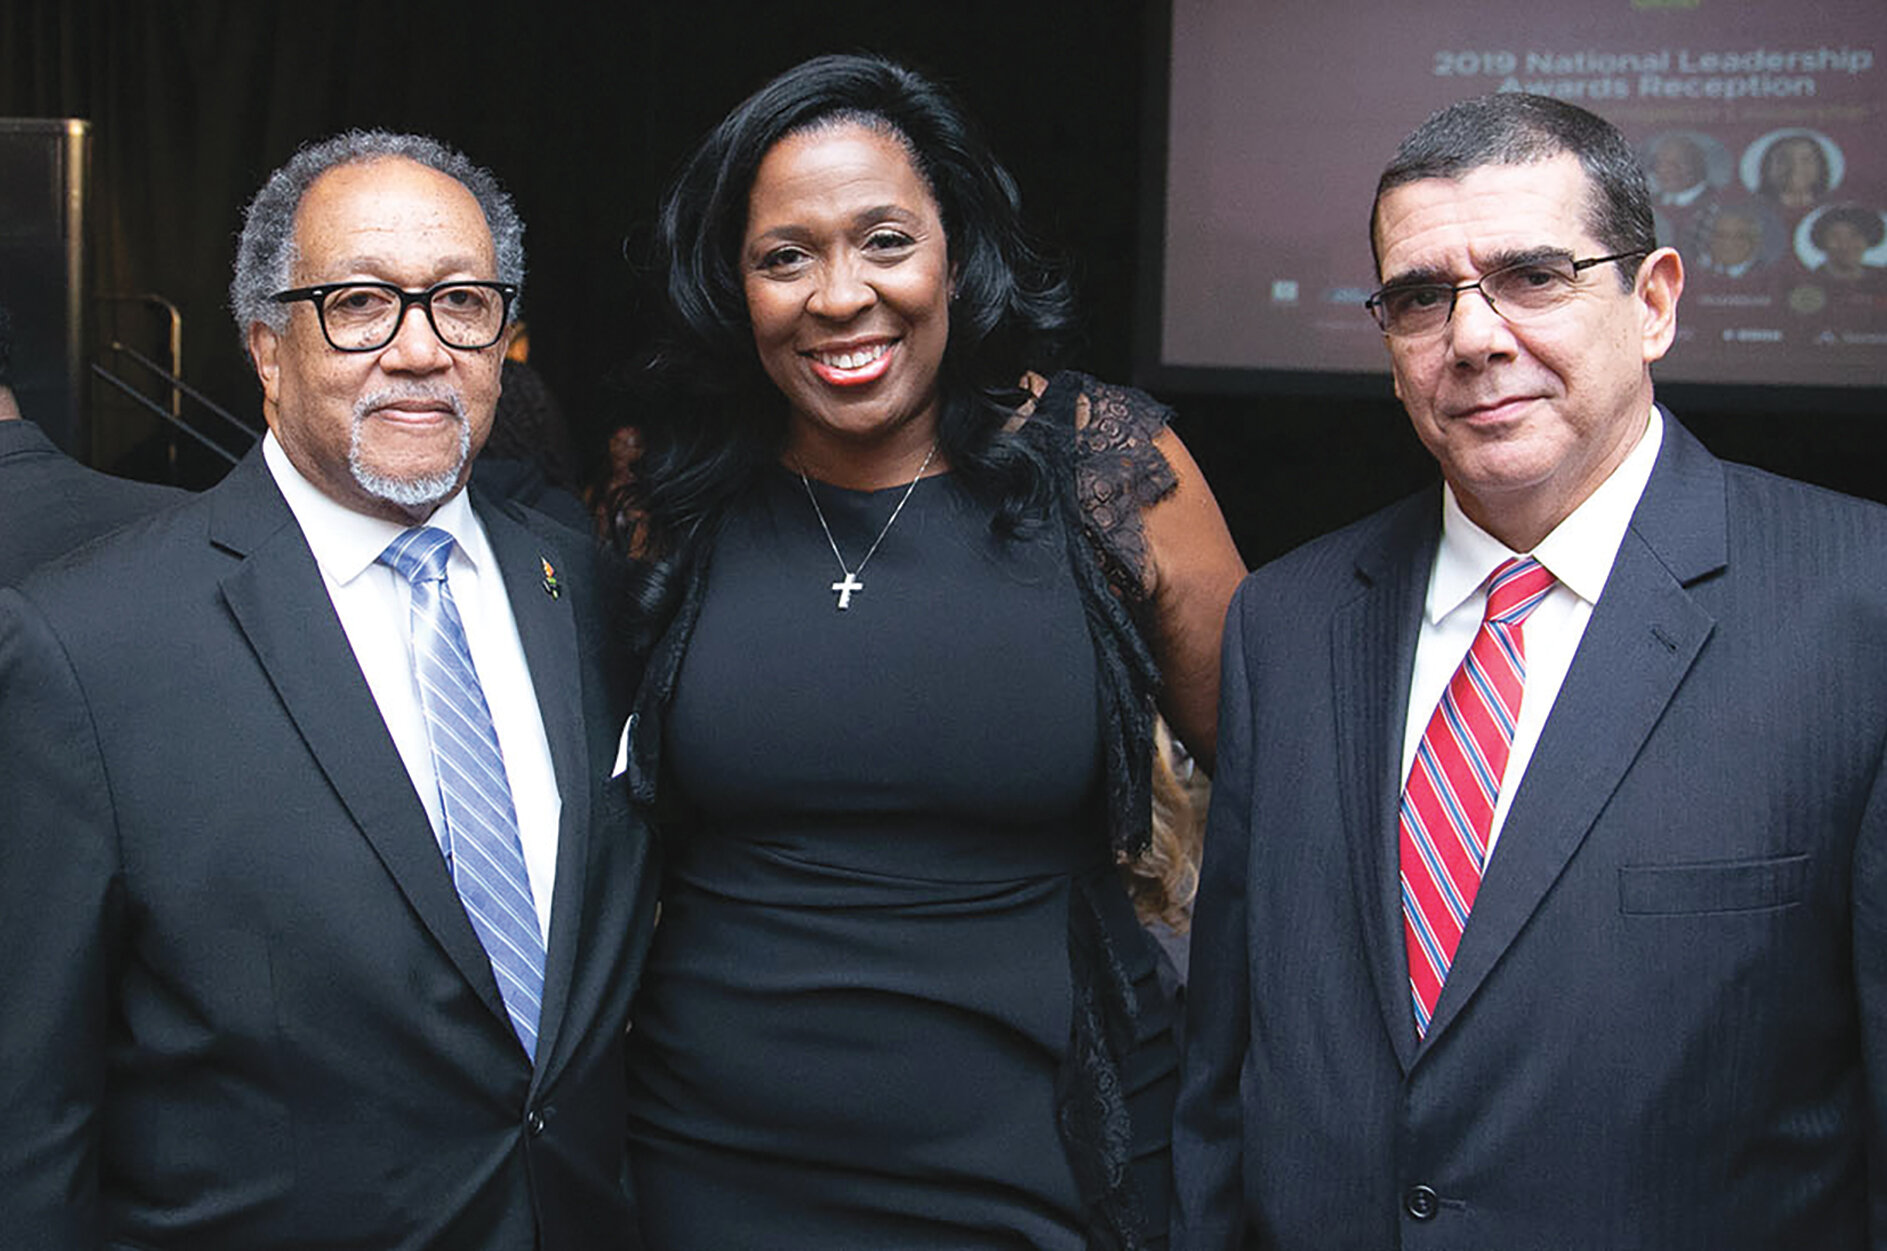 """""""We are delighted to celebrate this year's honorees,"""" said NNPA Chair and Houston Forward Times Publisher Karen Carter Richards (center). Pictured with NNPA President and CEO, Dr. Benjamin F. Chavis Jr. (left) and Cuban Ambassador to the United States, José Ramón Cabañas (right)."""